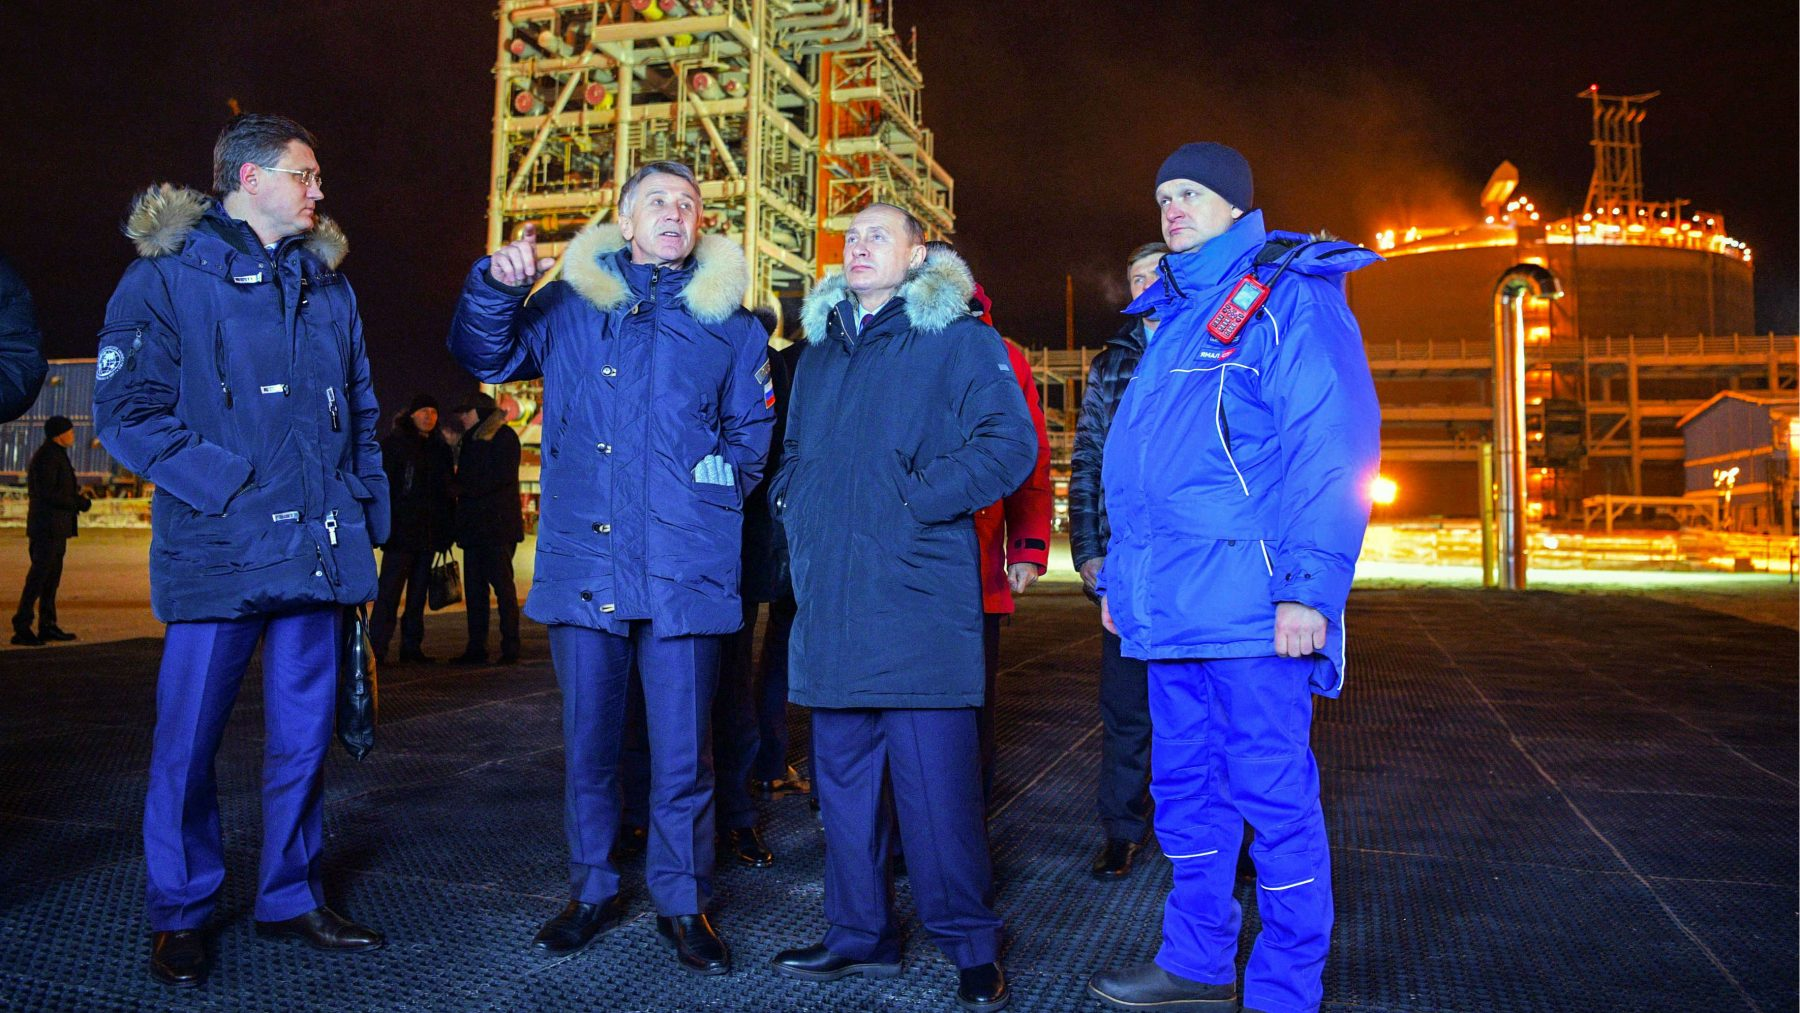 Putin's Arctic shipping goals mobilizing officials, industry